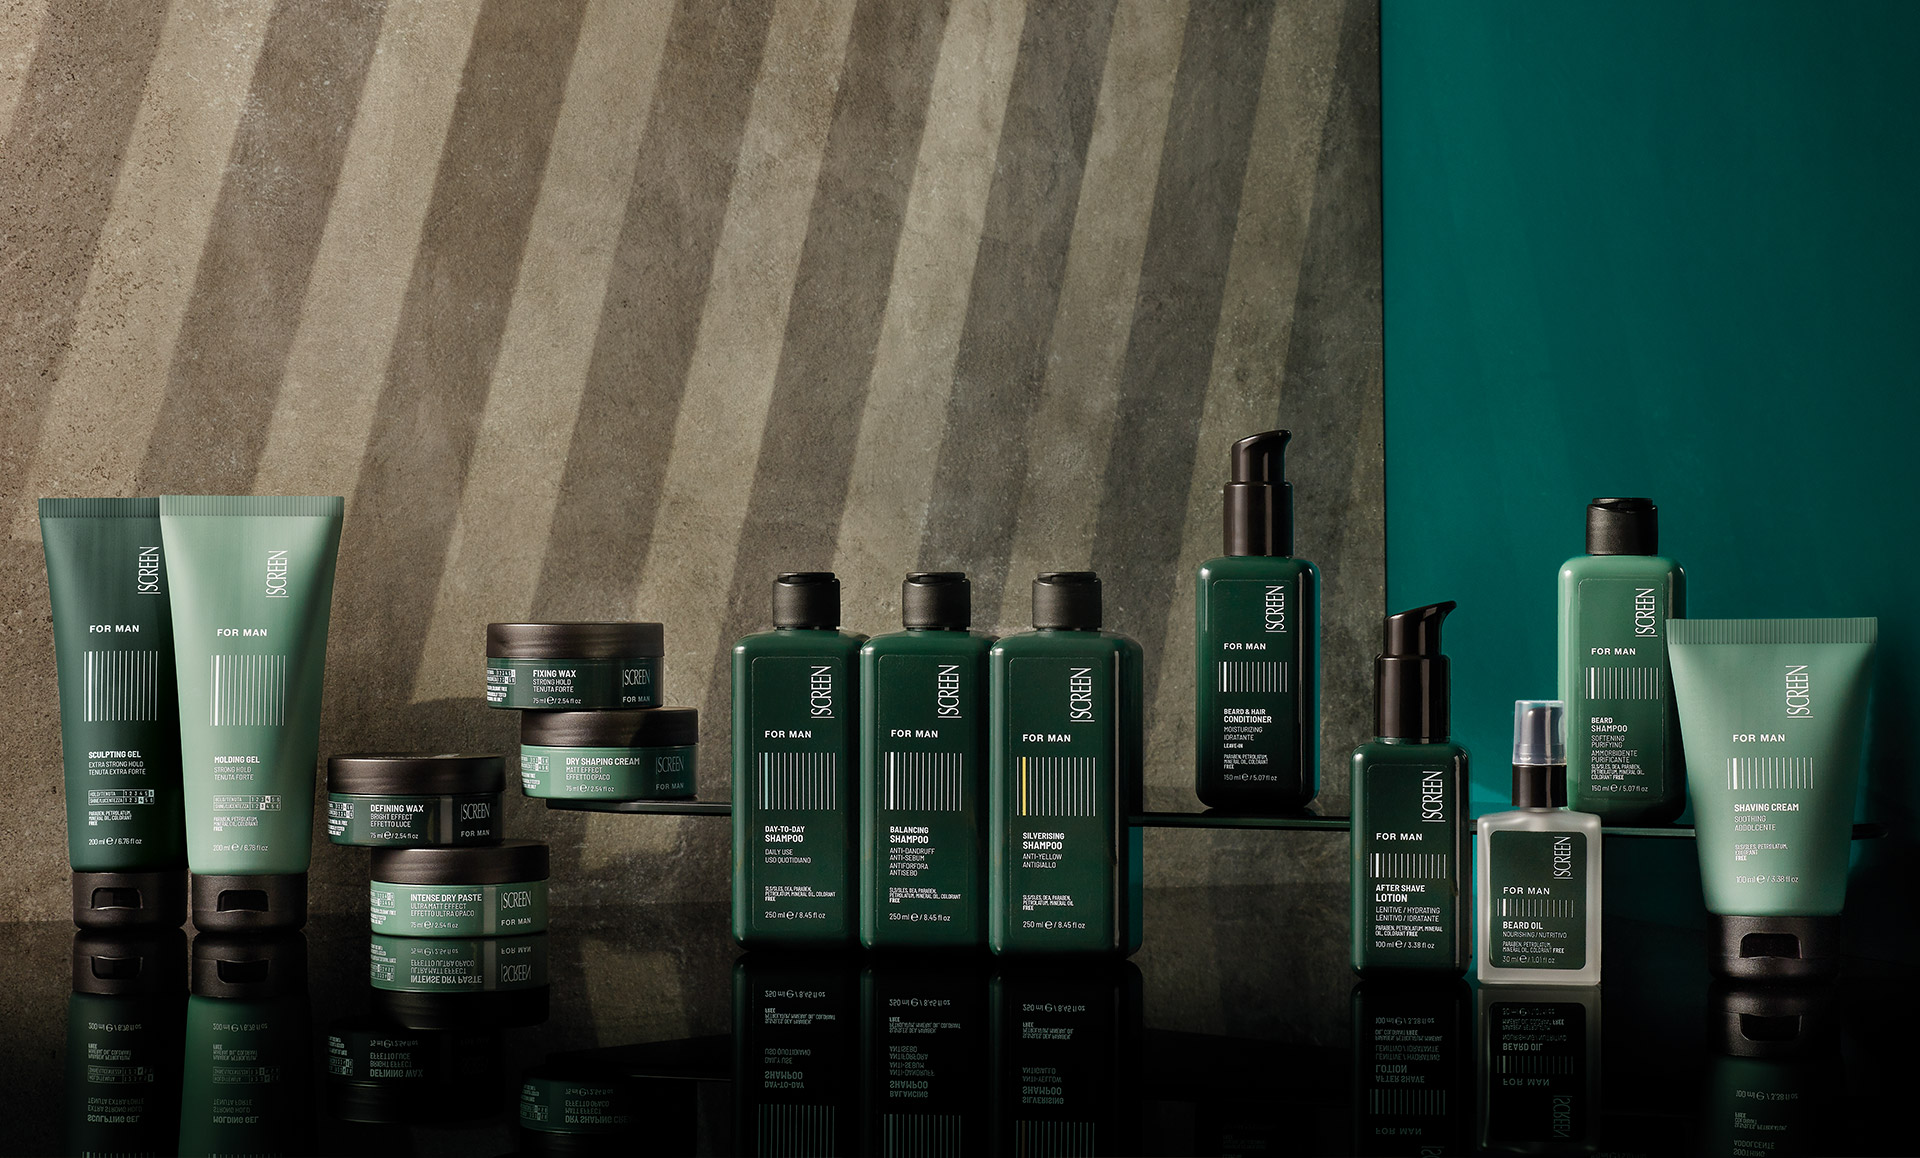 Screen For Man - Linea Uomo Capelli Barba Screen Hair Care